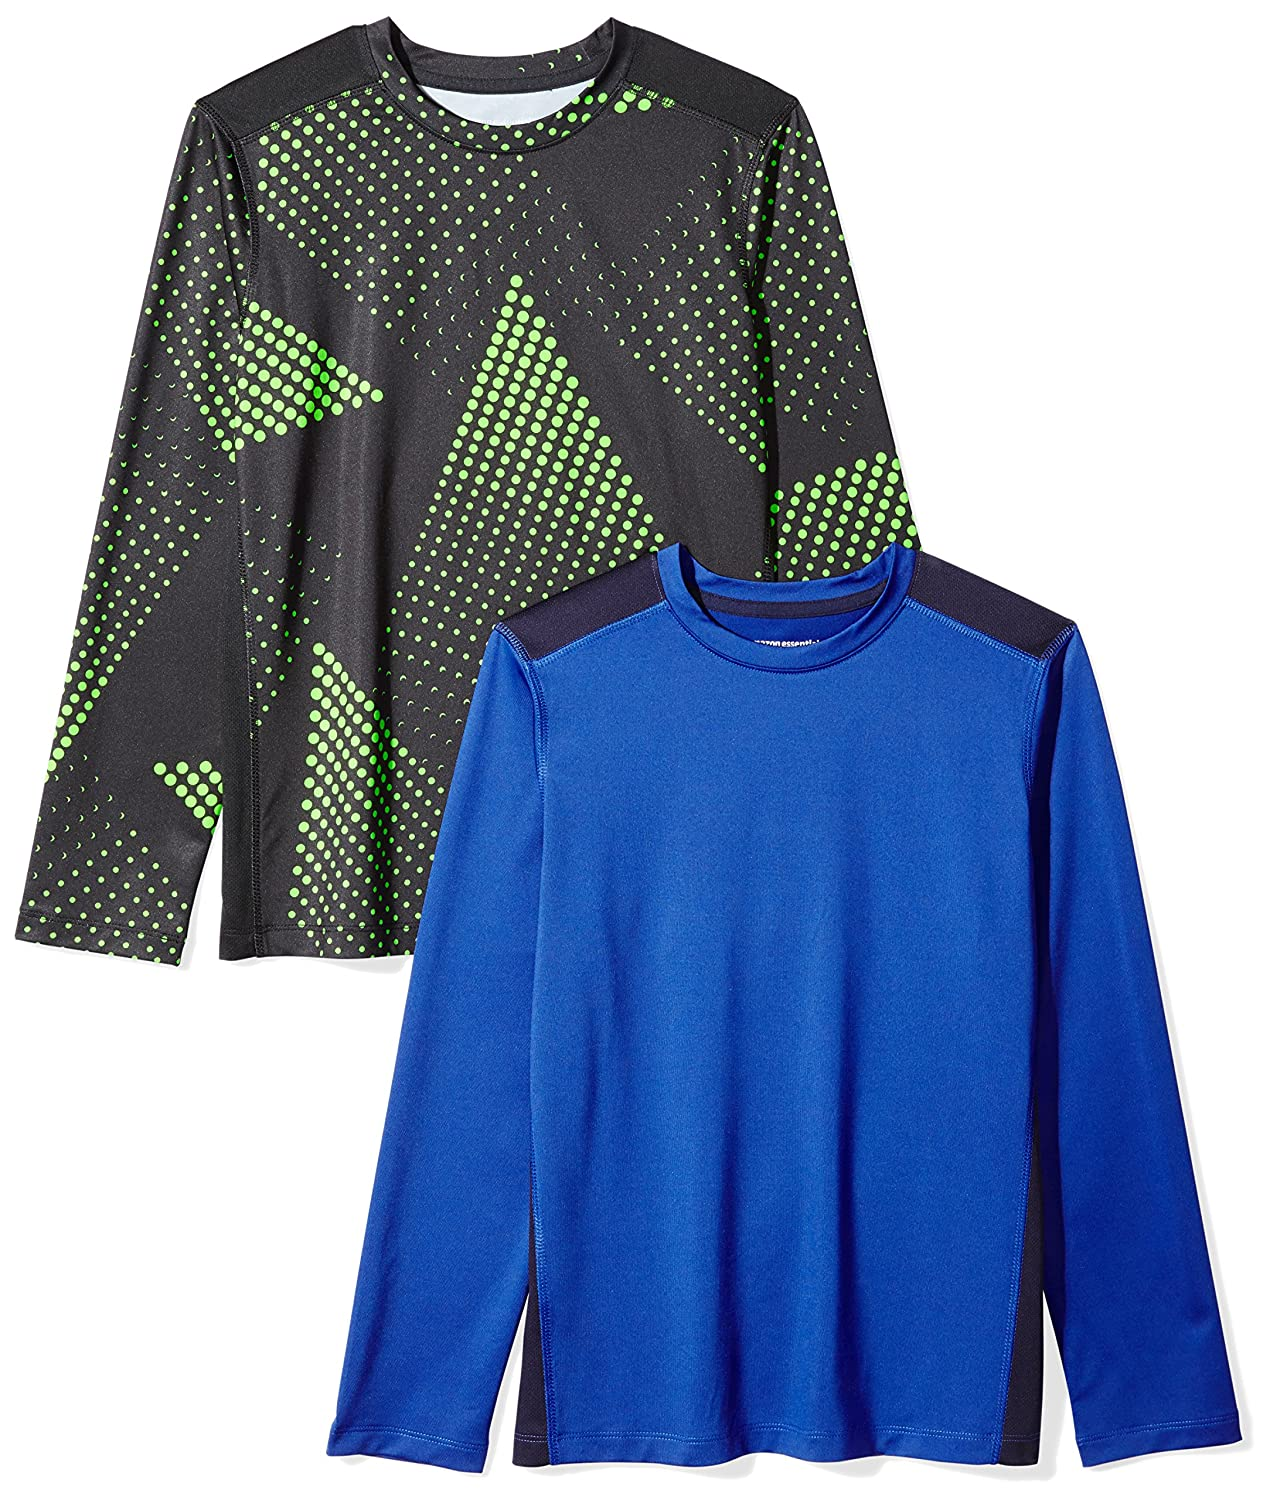 Amazon Essentials Boys Boys' 2-Pack Long-Sleeve Pieced Active Tee BAE45097FL18